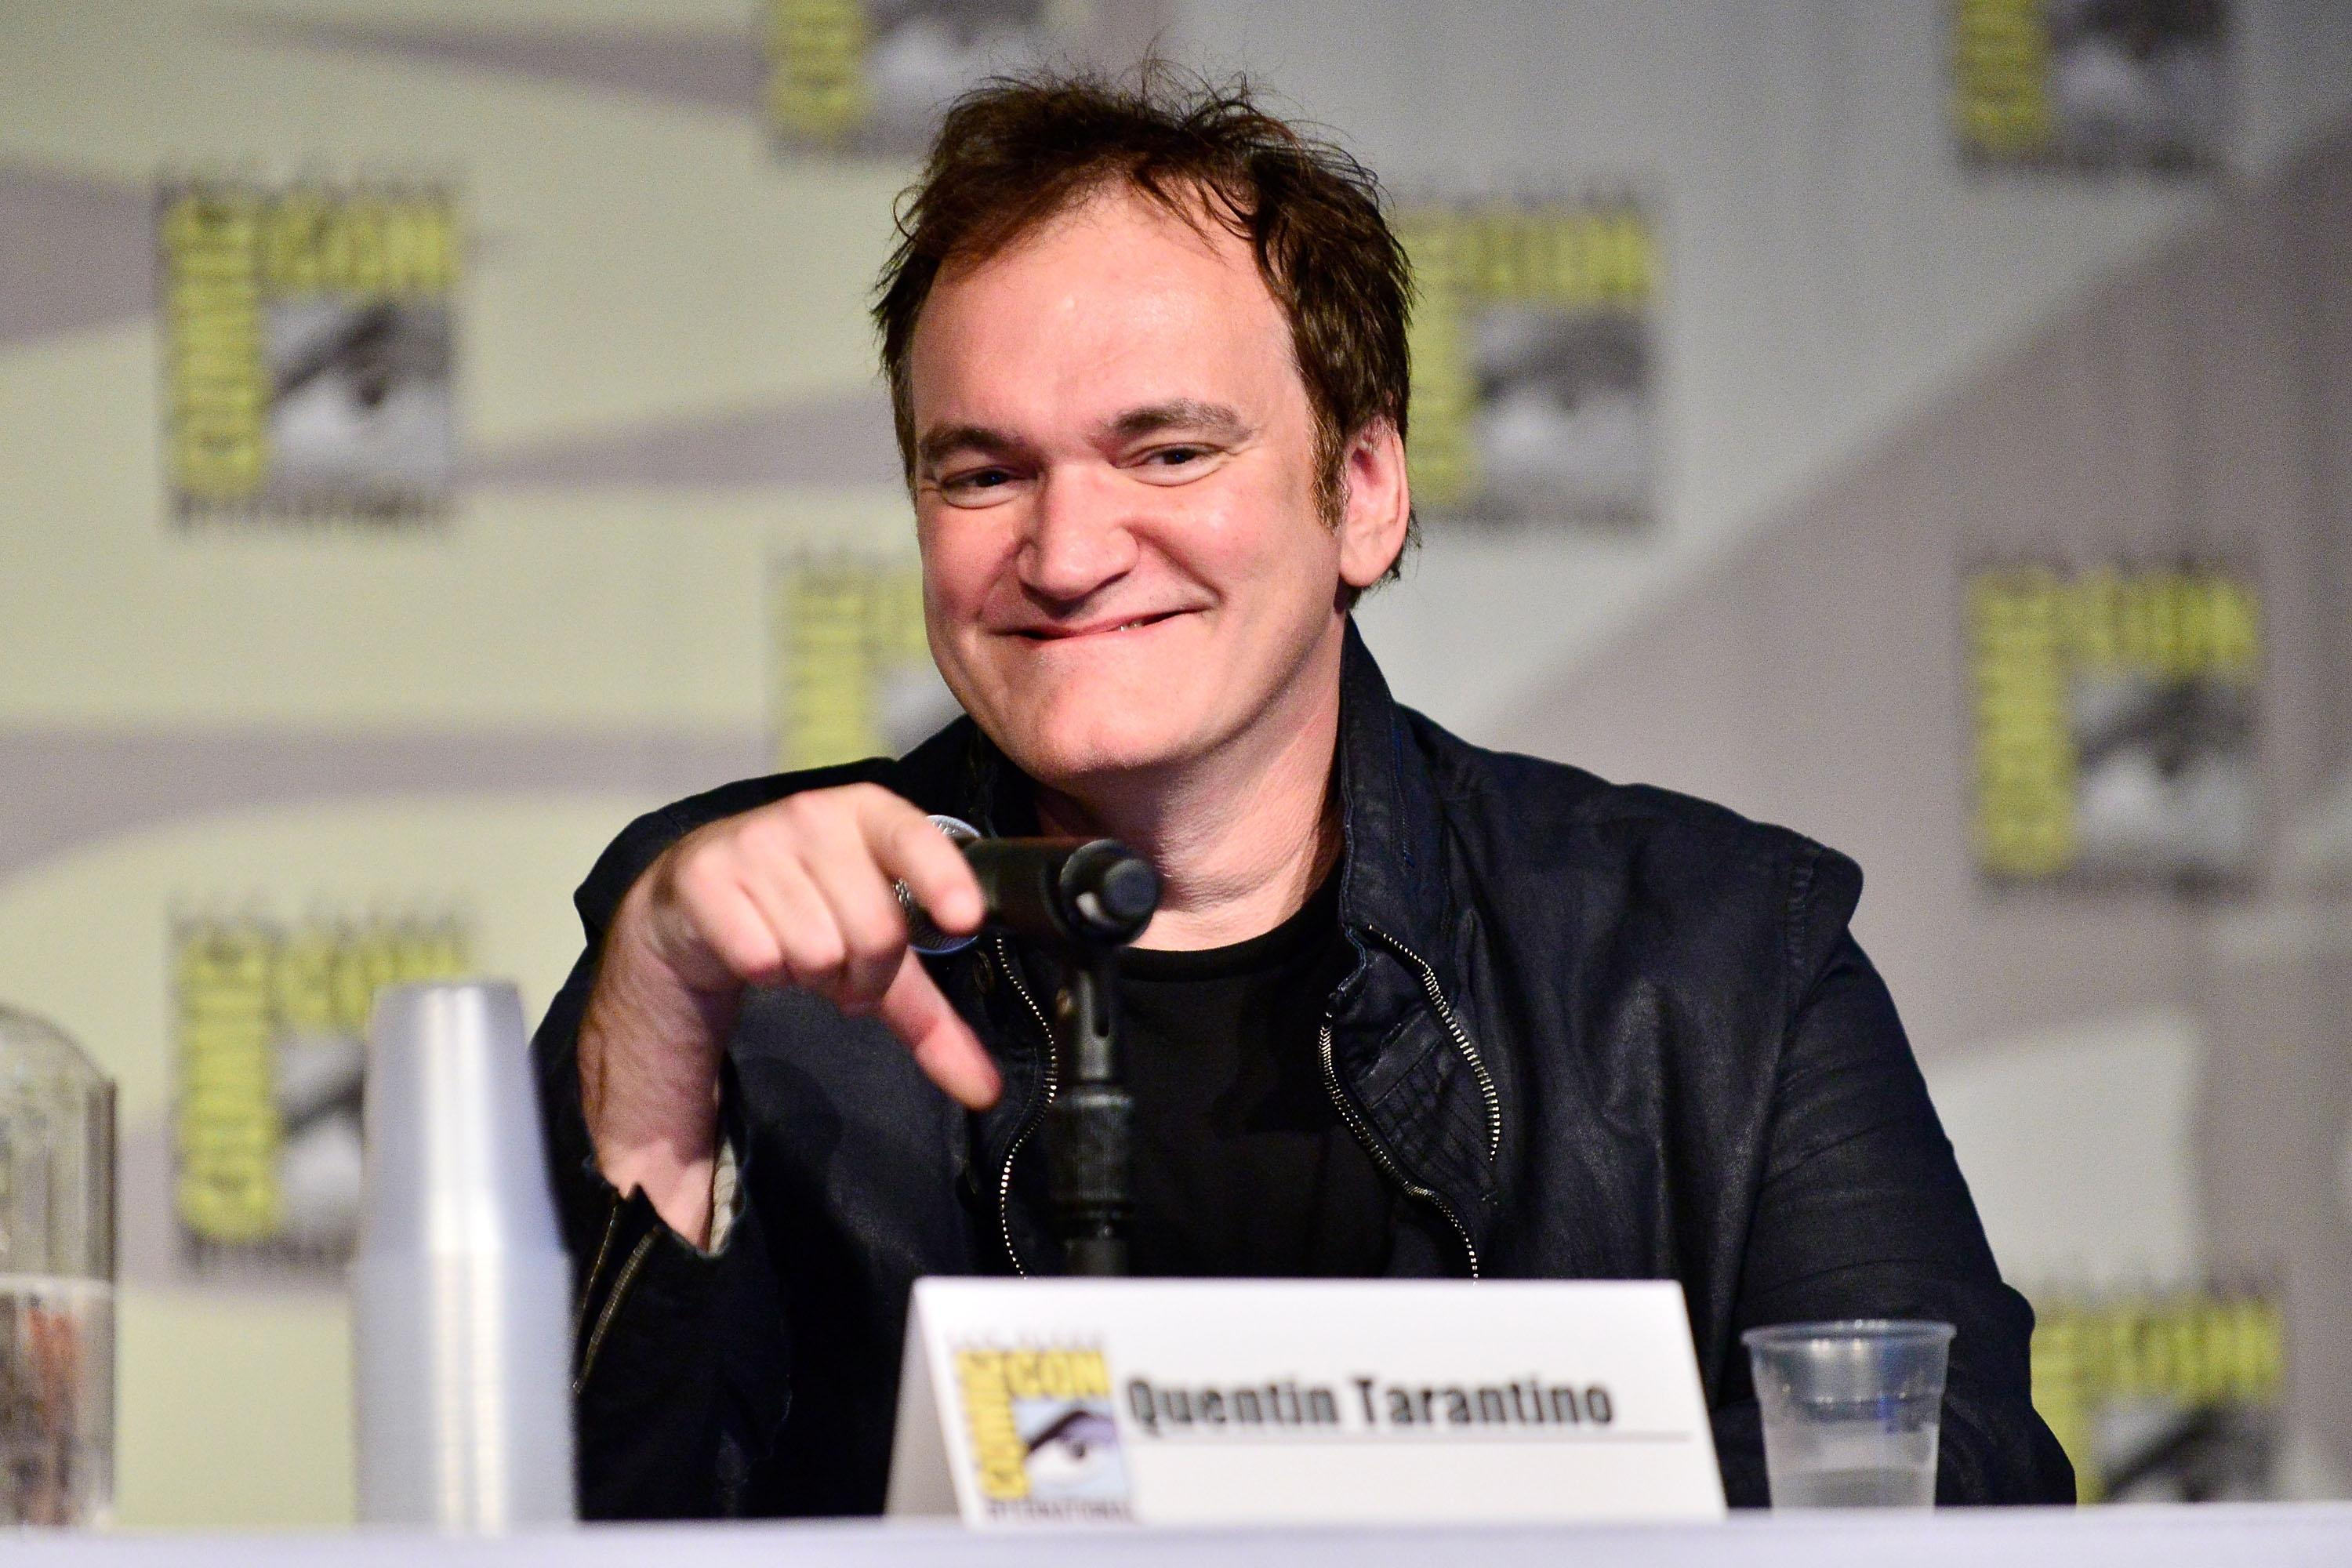 Quentin Tarantino's 'Hateful Eight' Teaser Trailer Is Online